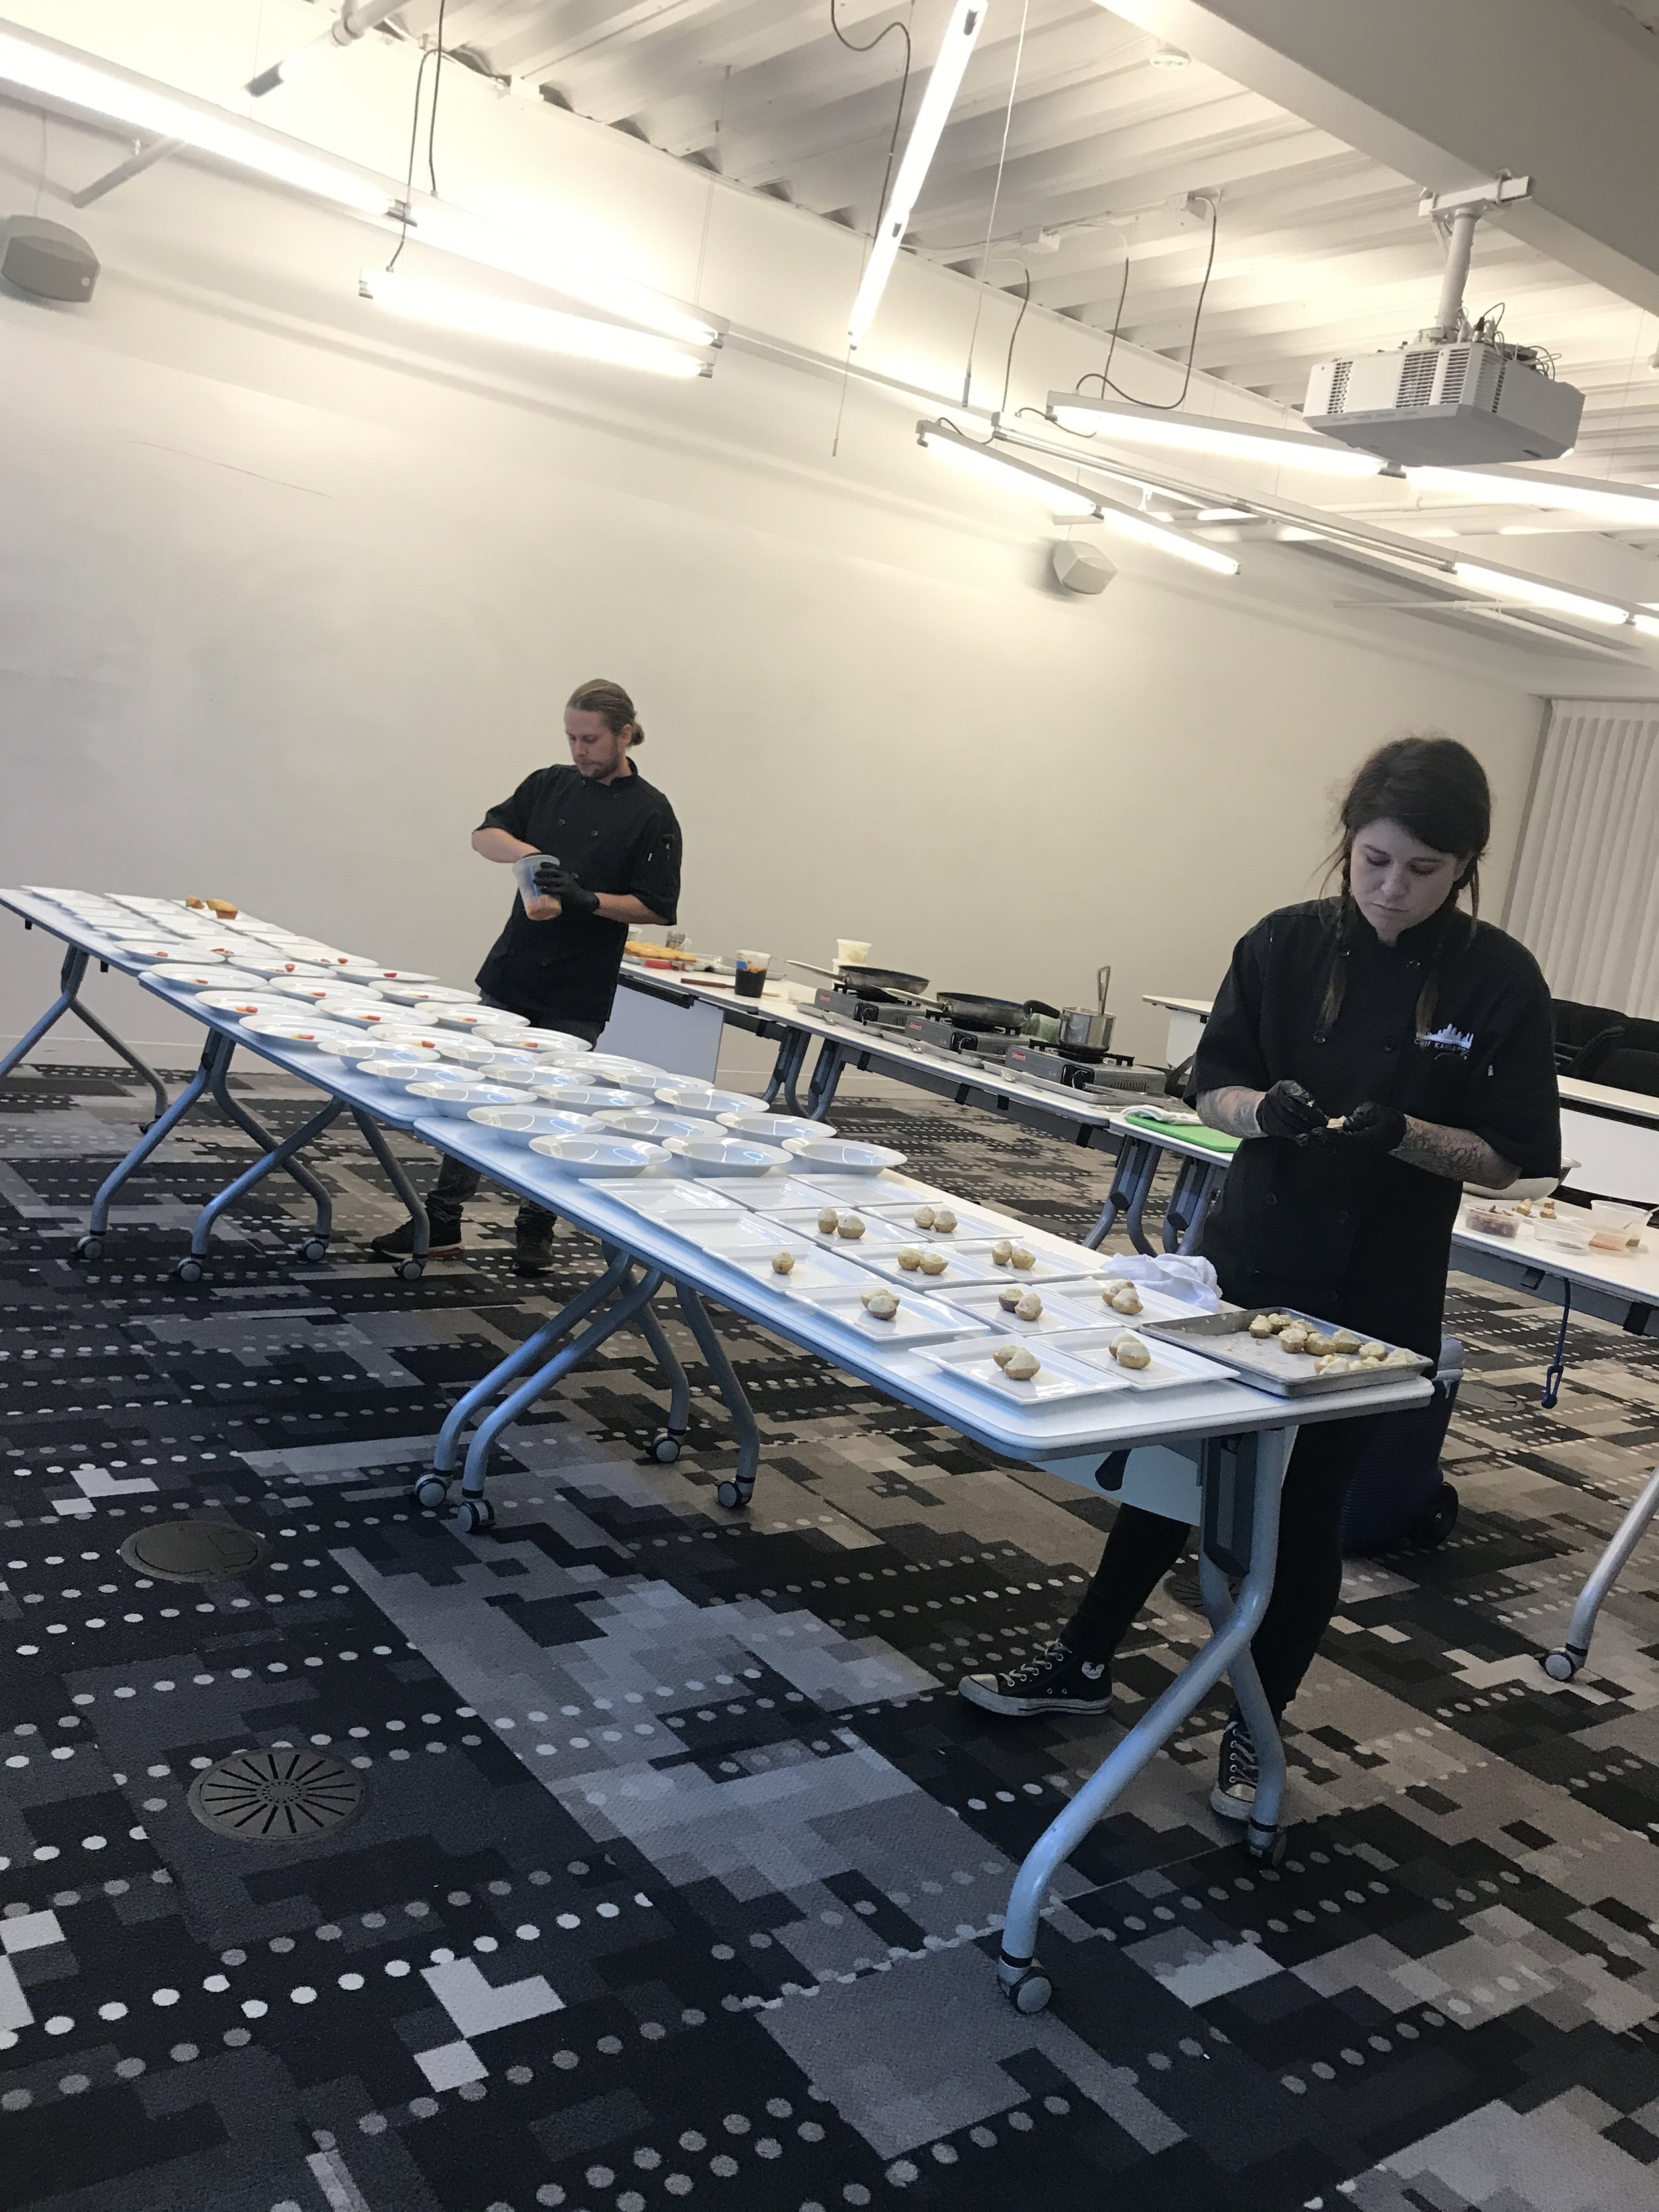 crossroads-downtown-kansas-city-river-market-westbottoms-catering-caterer-breakfast-delivered-corporate-events-training9.jpg